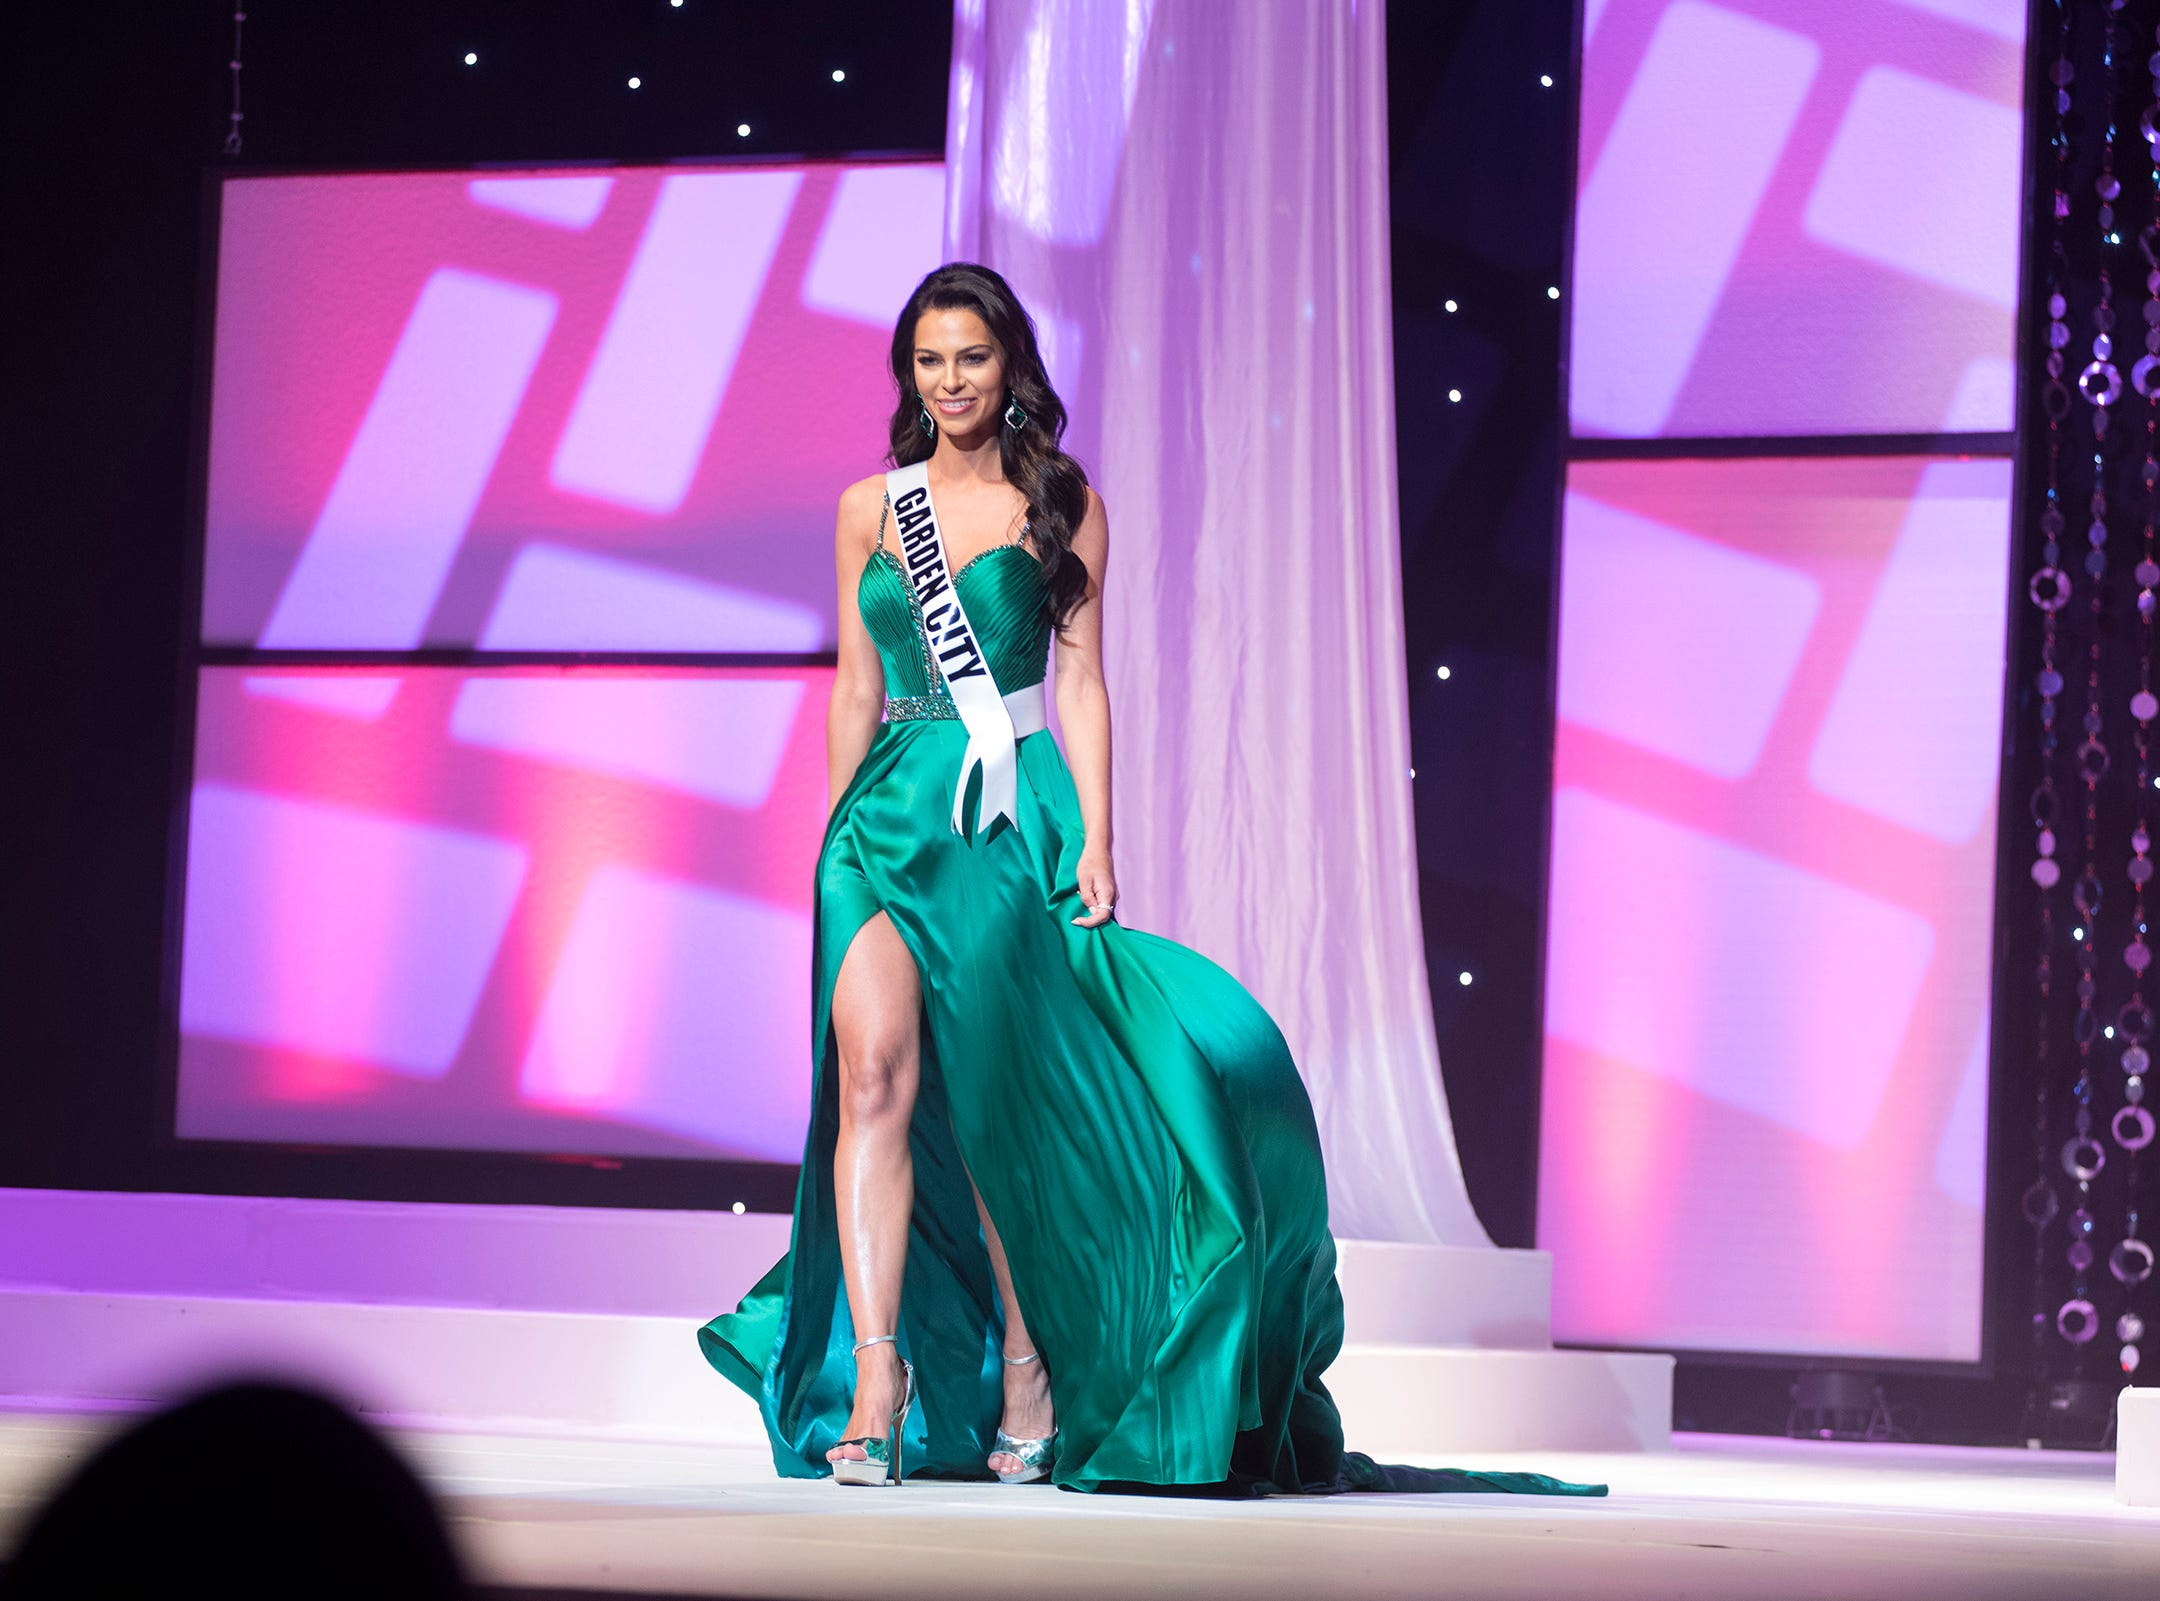 Miss Garden City Alyse Madej competes in formal wear during the semifinal round of Miss Michigan USA Saturday, Sept. 22, 2018 at McMorran Theater.